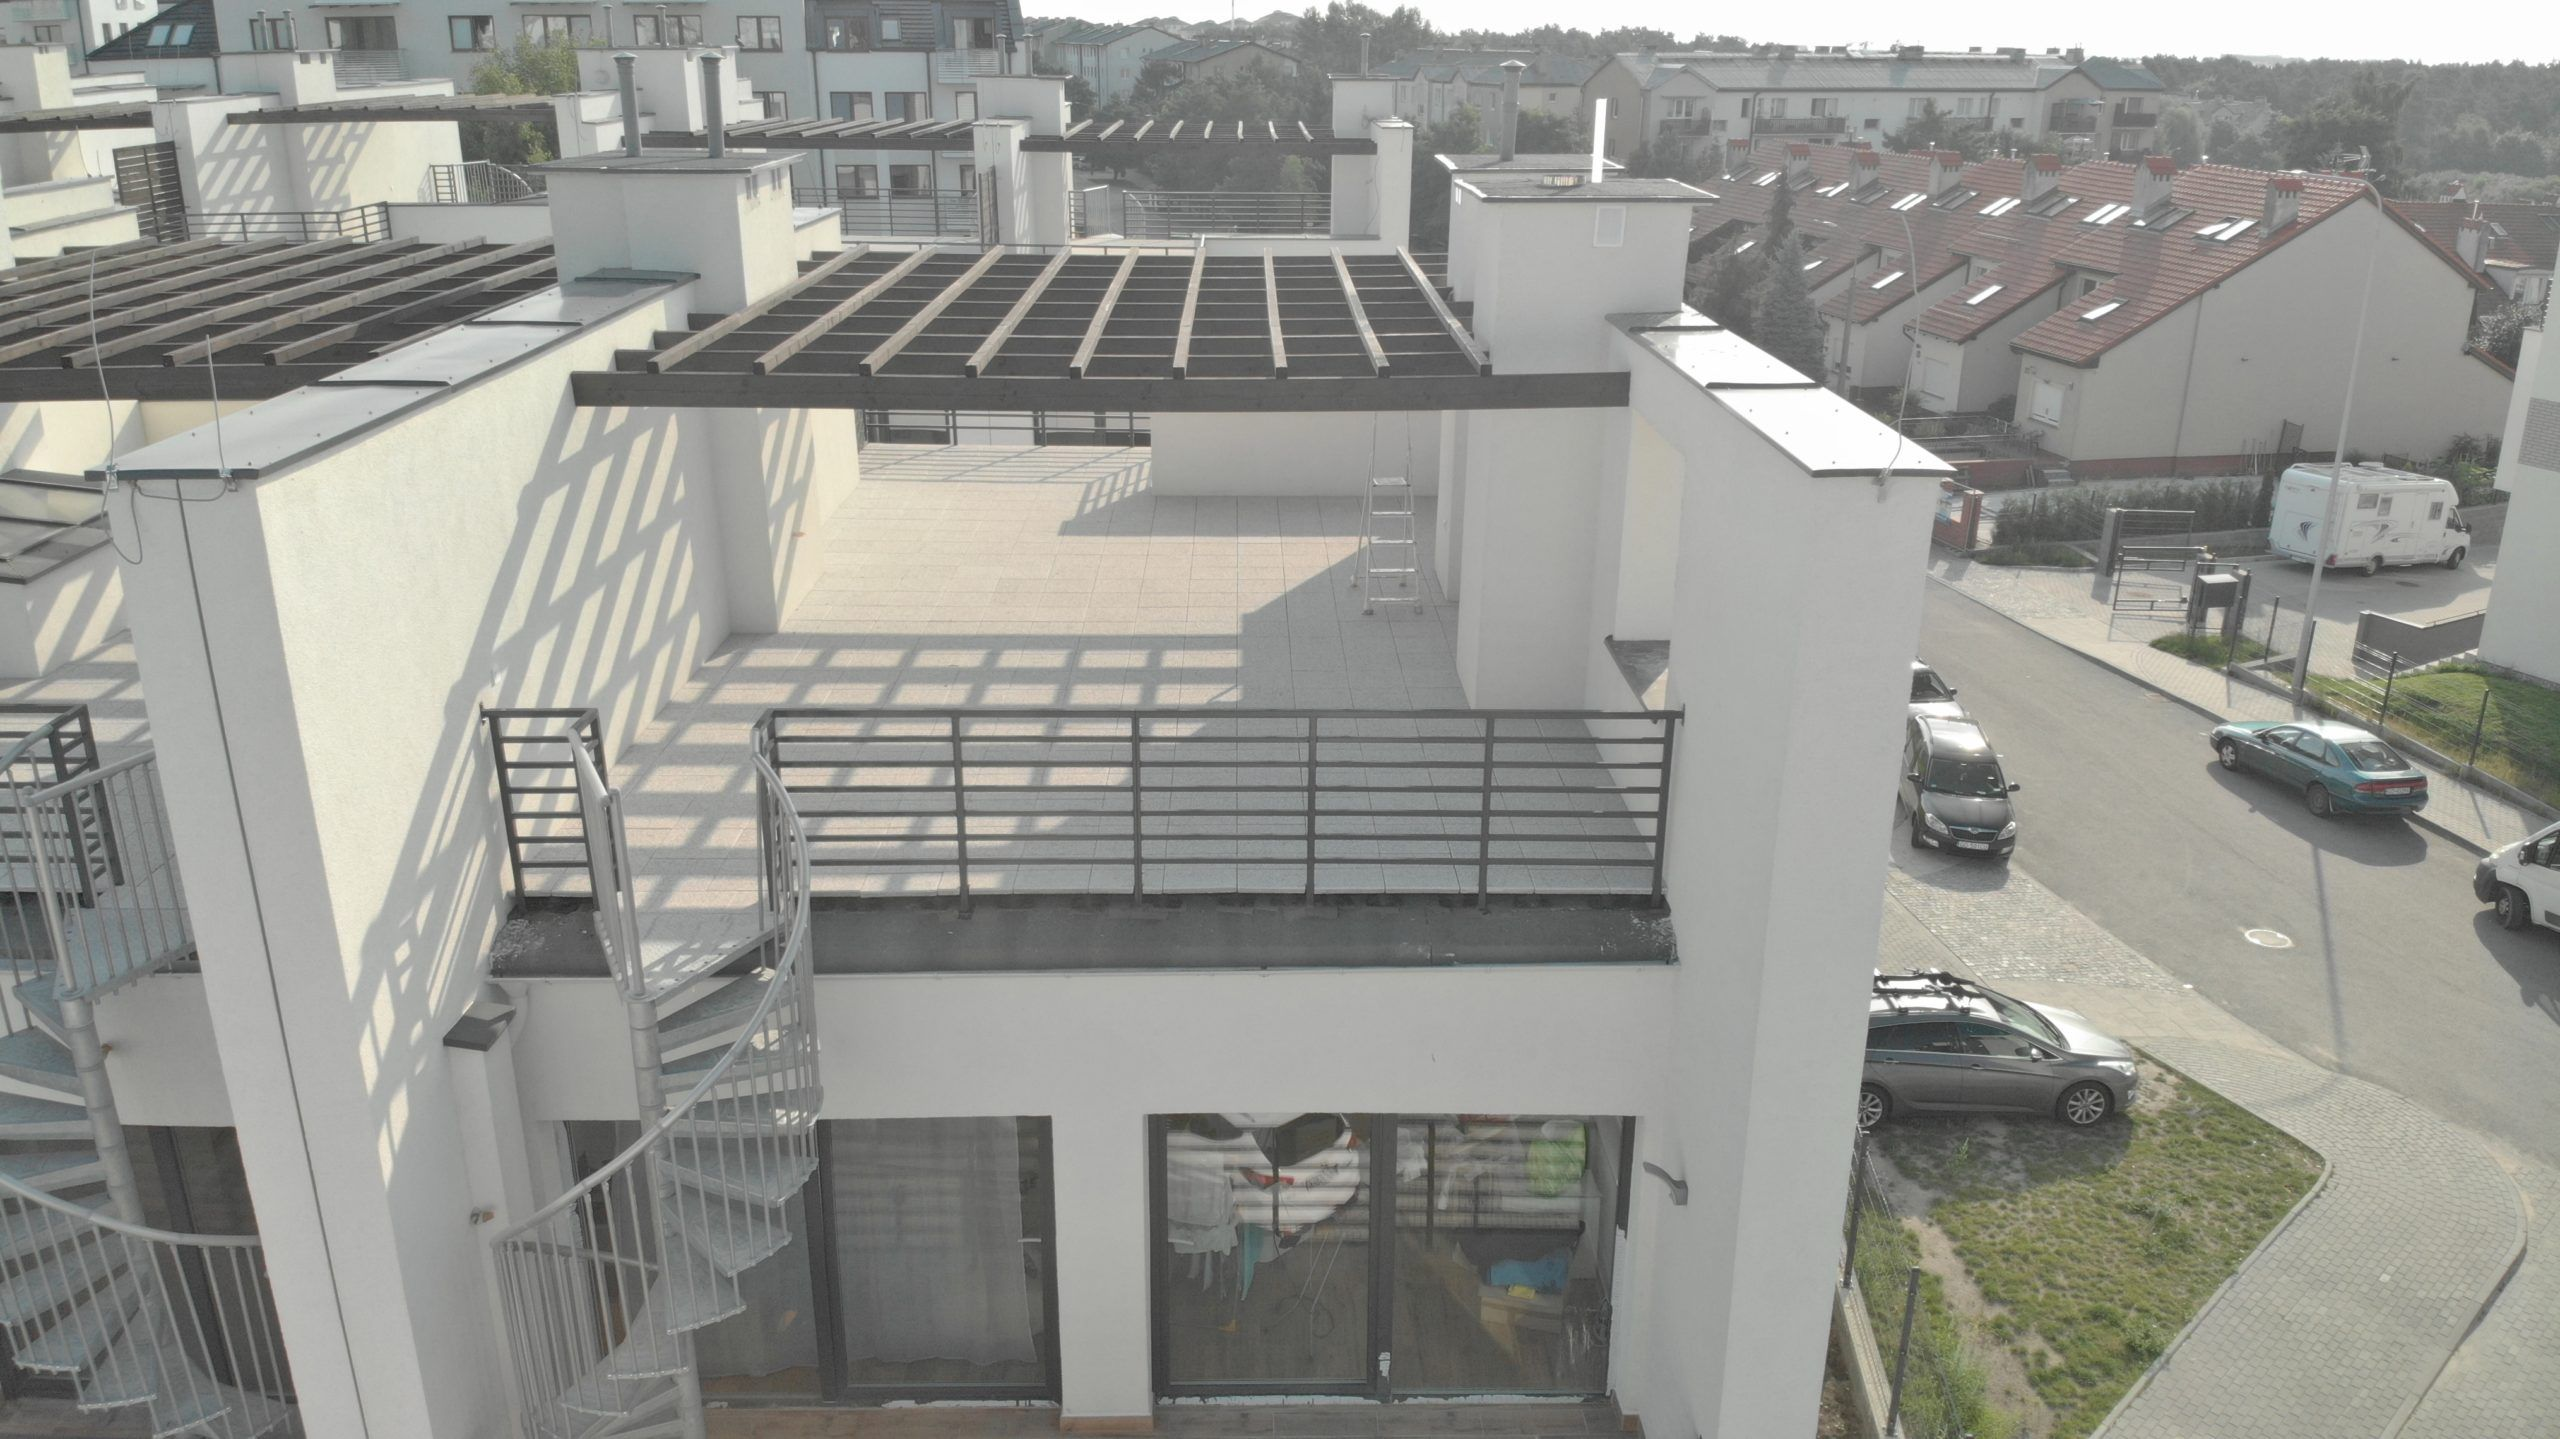 terrace with ceramic tiles on the roof of the building